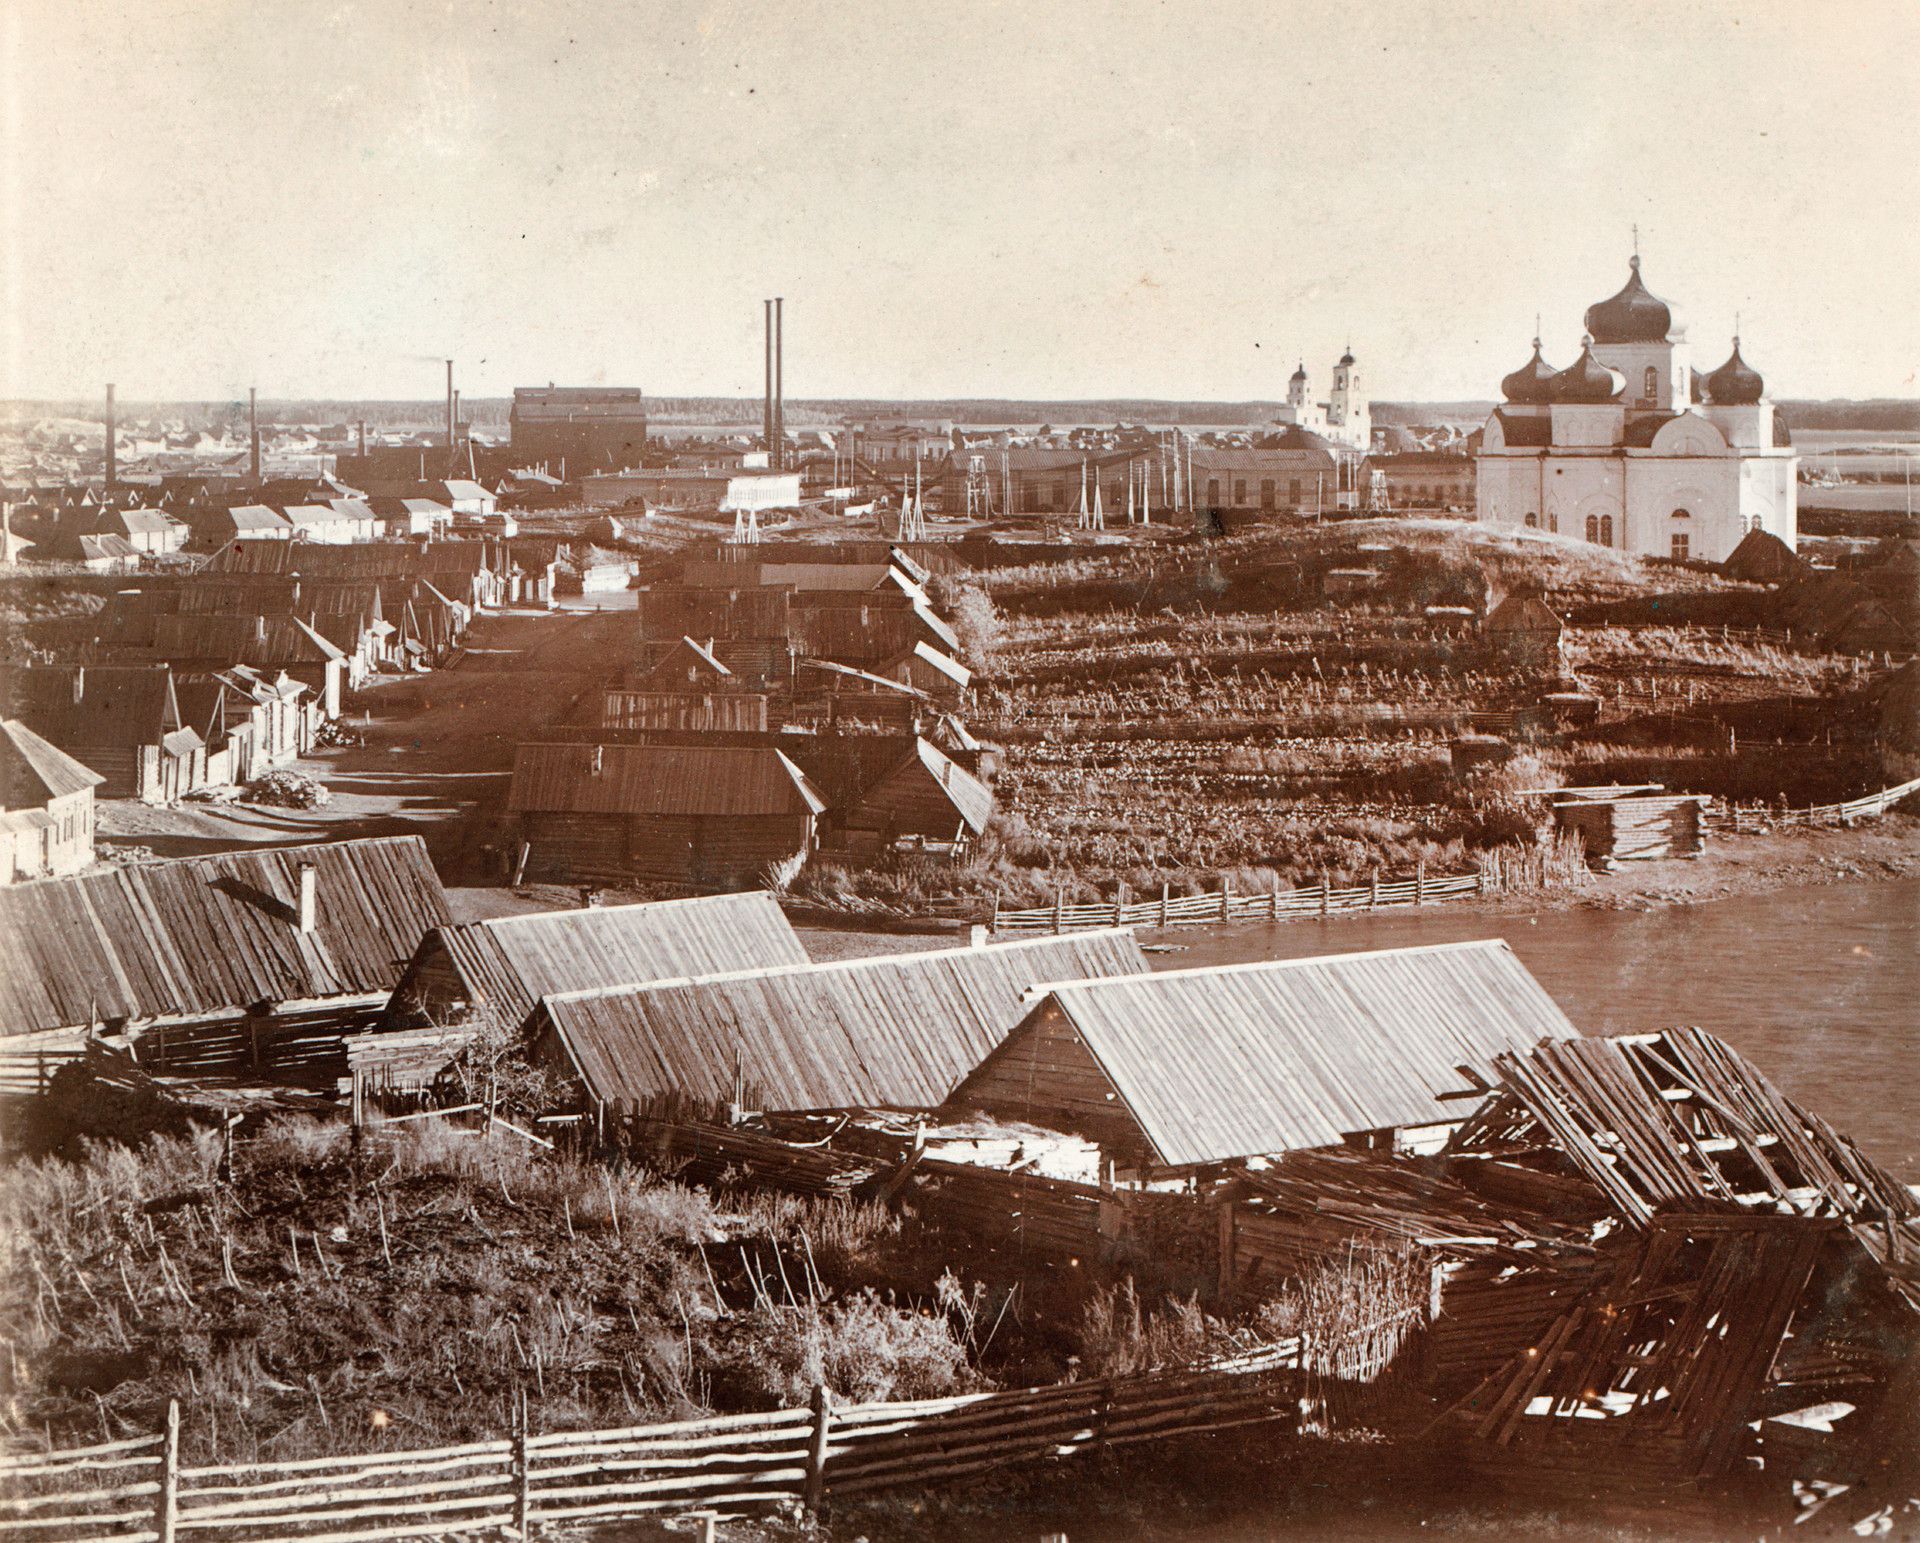 View of workers' houses & garden plots. Background: Kyshtym factory (left), Church of the Descent of the Holy Spirit, Cathedral of the Nativity of Christ. 1909.